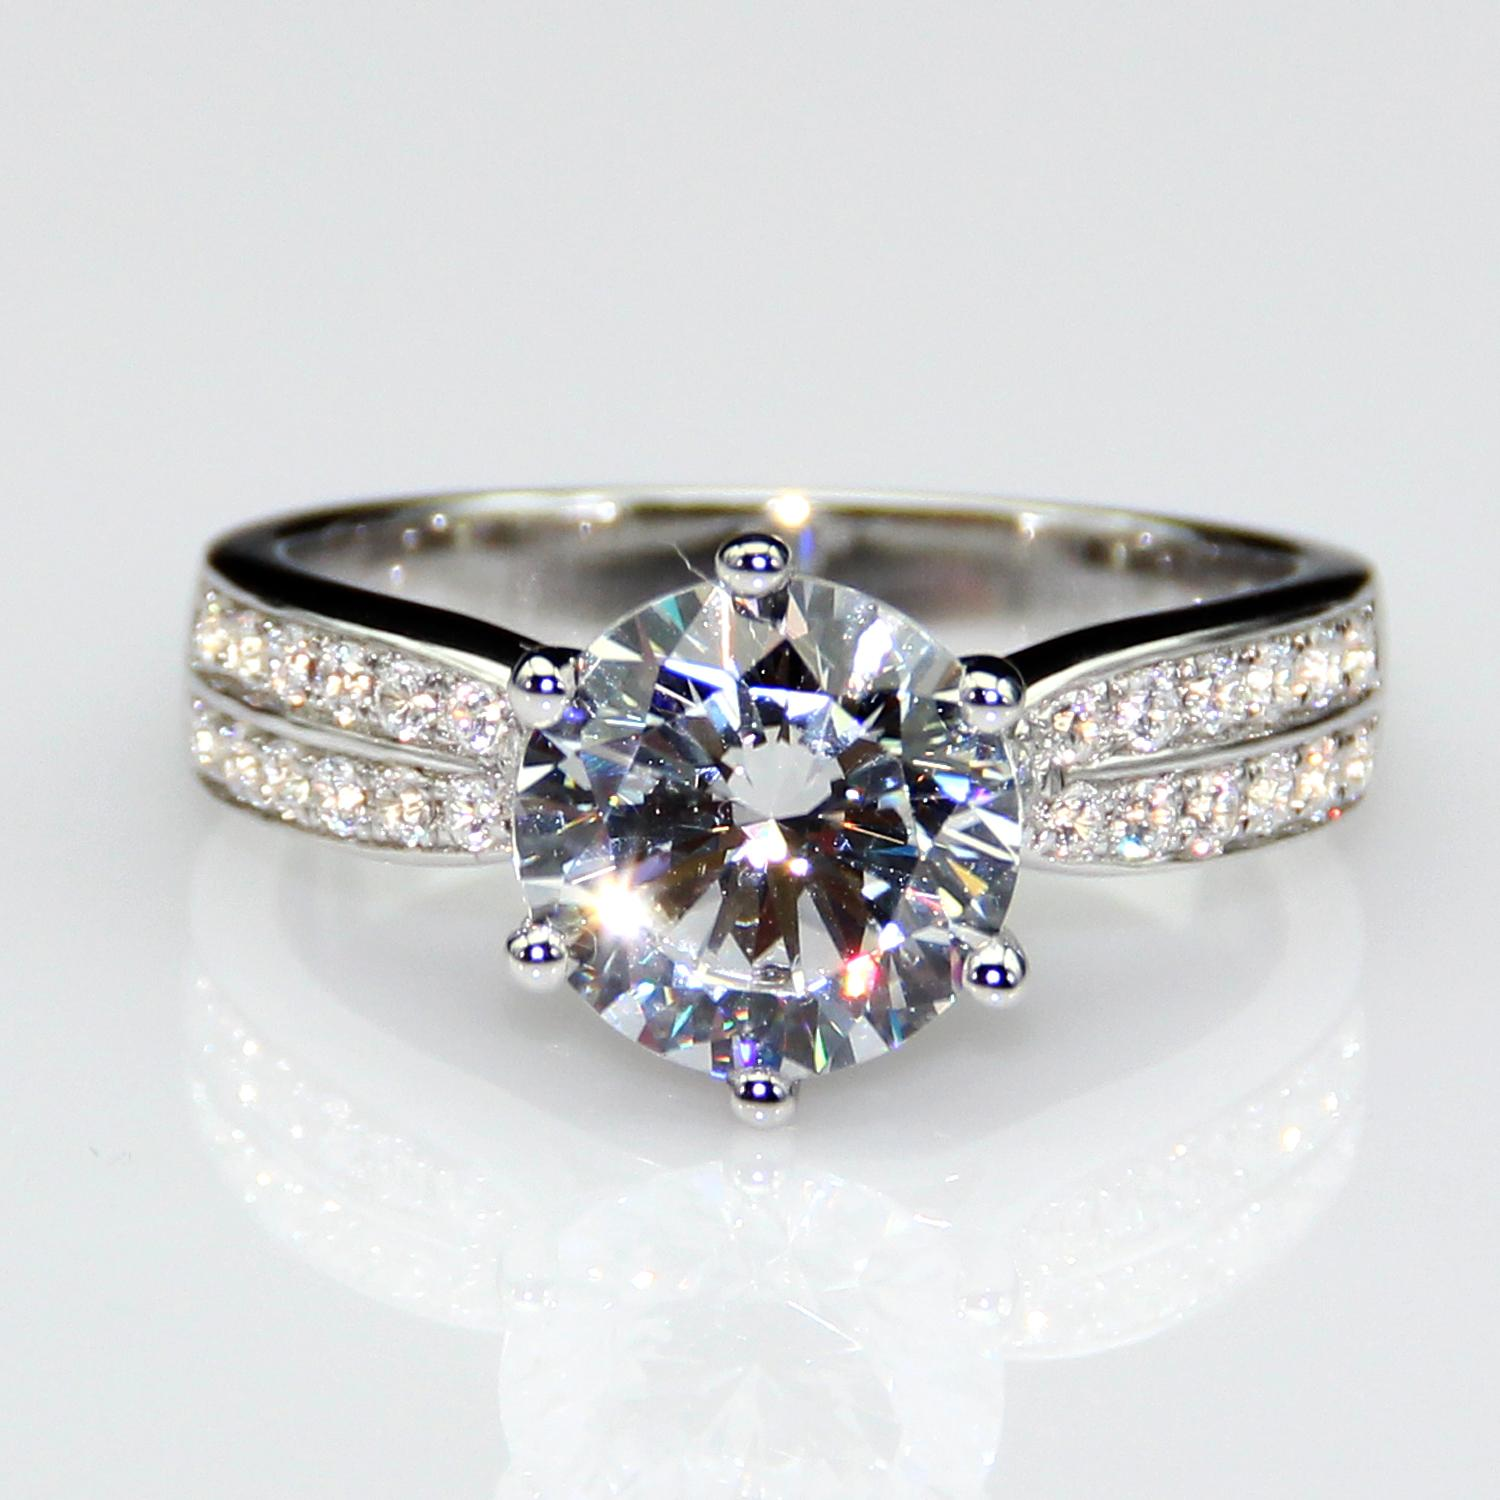 2ct Diamond Rings Lonze Diamond Engagement Rings Micro Pave Solitaire  Accents 925 Sterling Silver Plated White